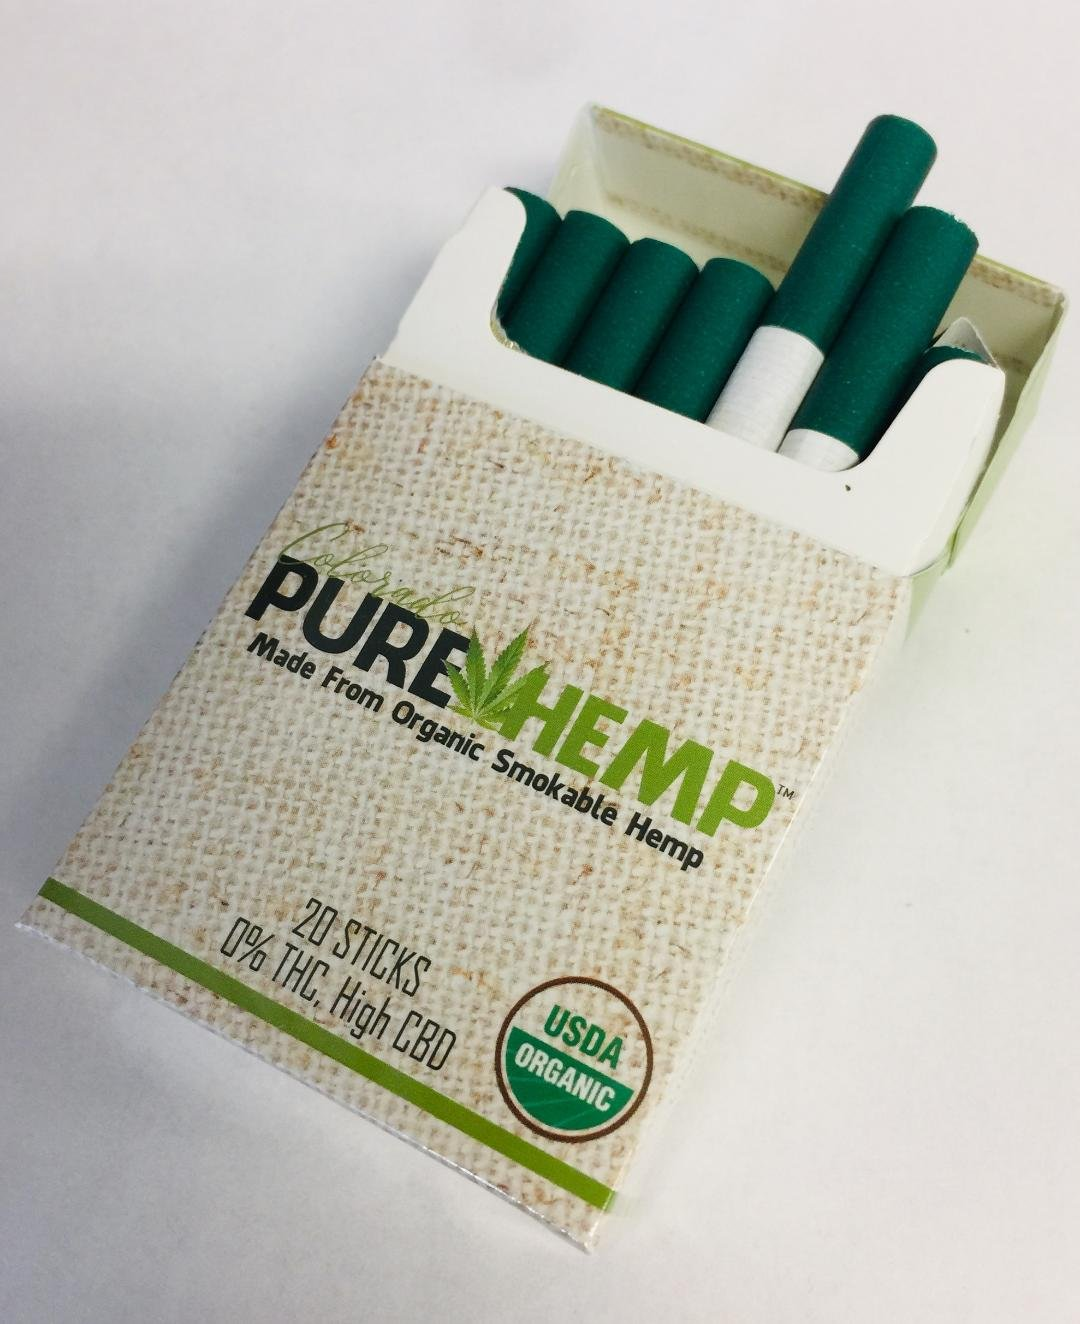 Pure Hemp Cigaretts